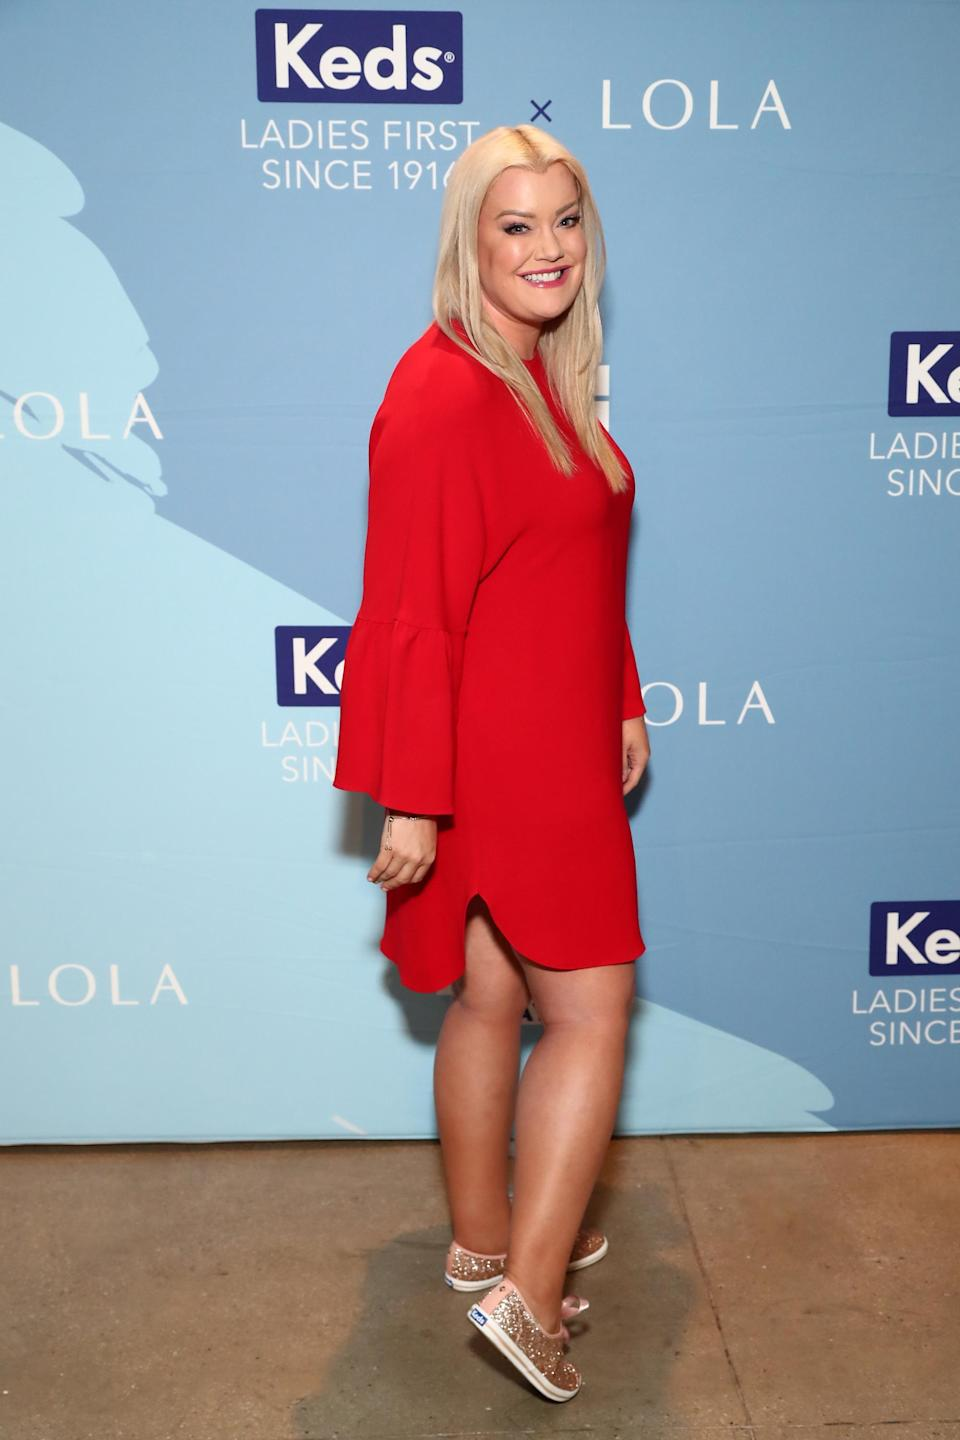 Jamie Kern Lima, co-founder and CEO of IT Cosmetics, in August 2017 in New York City. (Photo: Astrid Stawiarz/Getty Images for Keds)